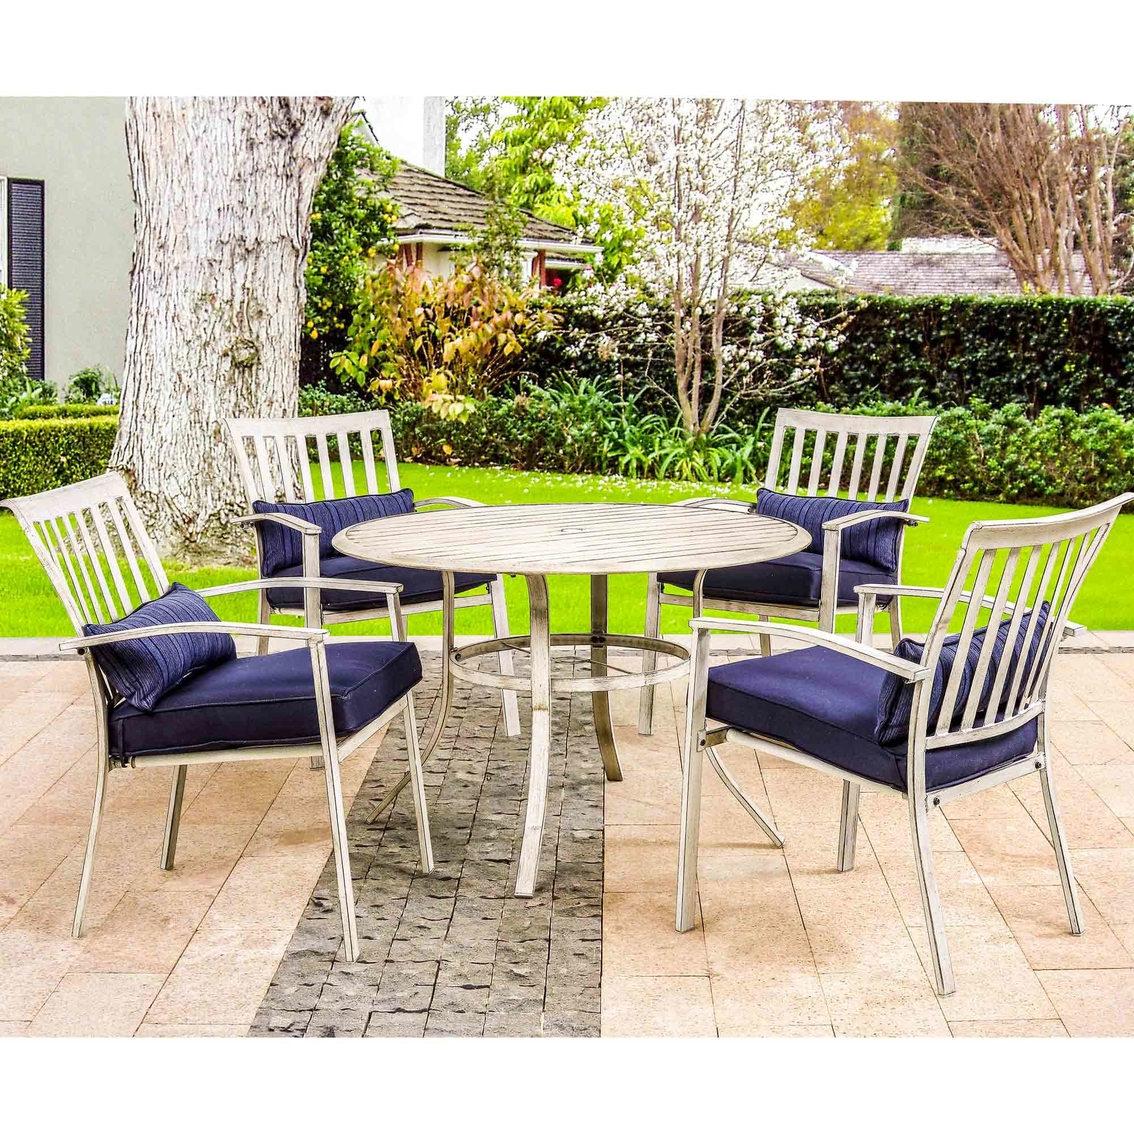 Courtyard Creations Bel Air Cushion Stationary 5 Pc. Dining Set